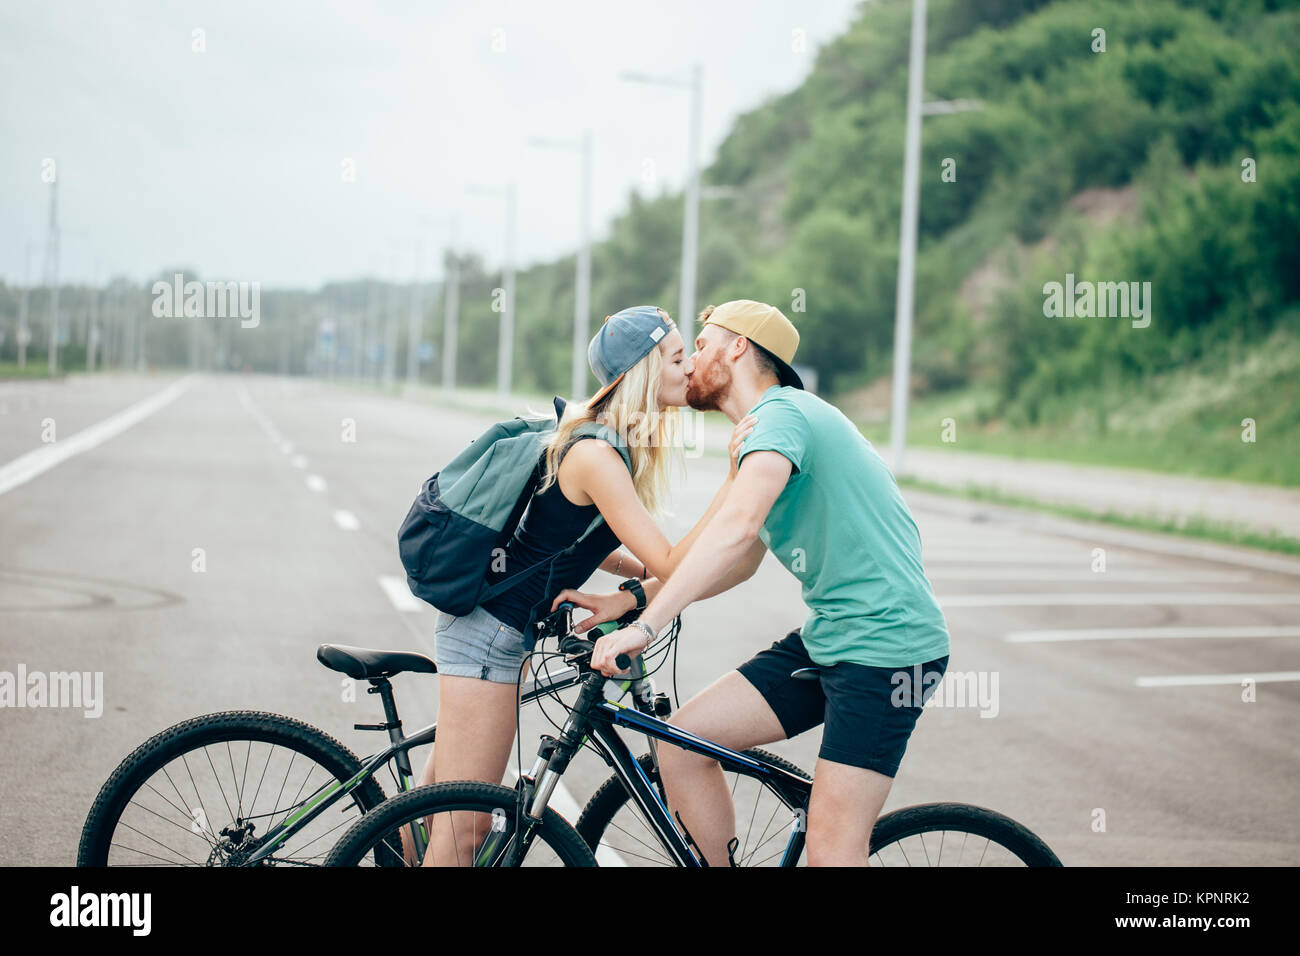 Romantic sports couple kissing against blurred background with bicycles - Stock Image